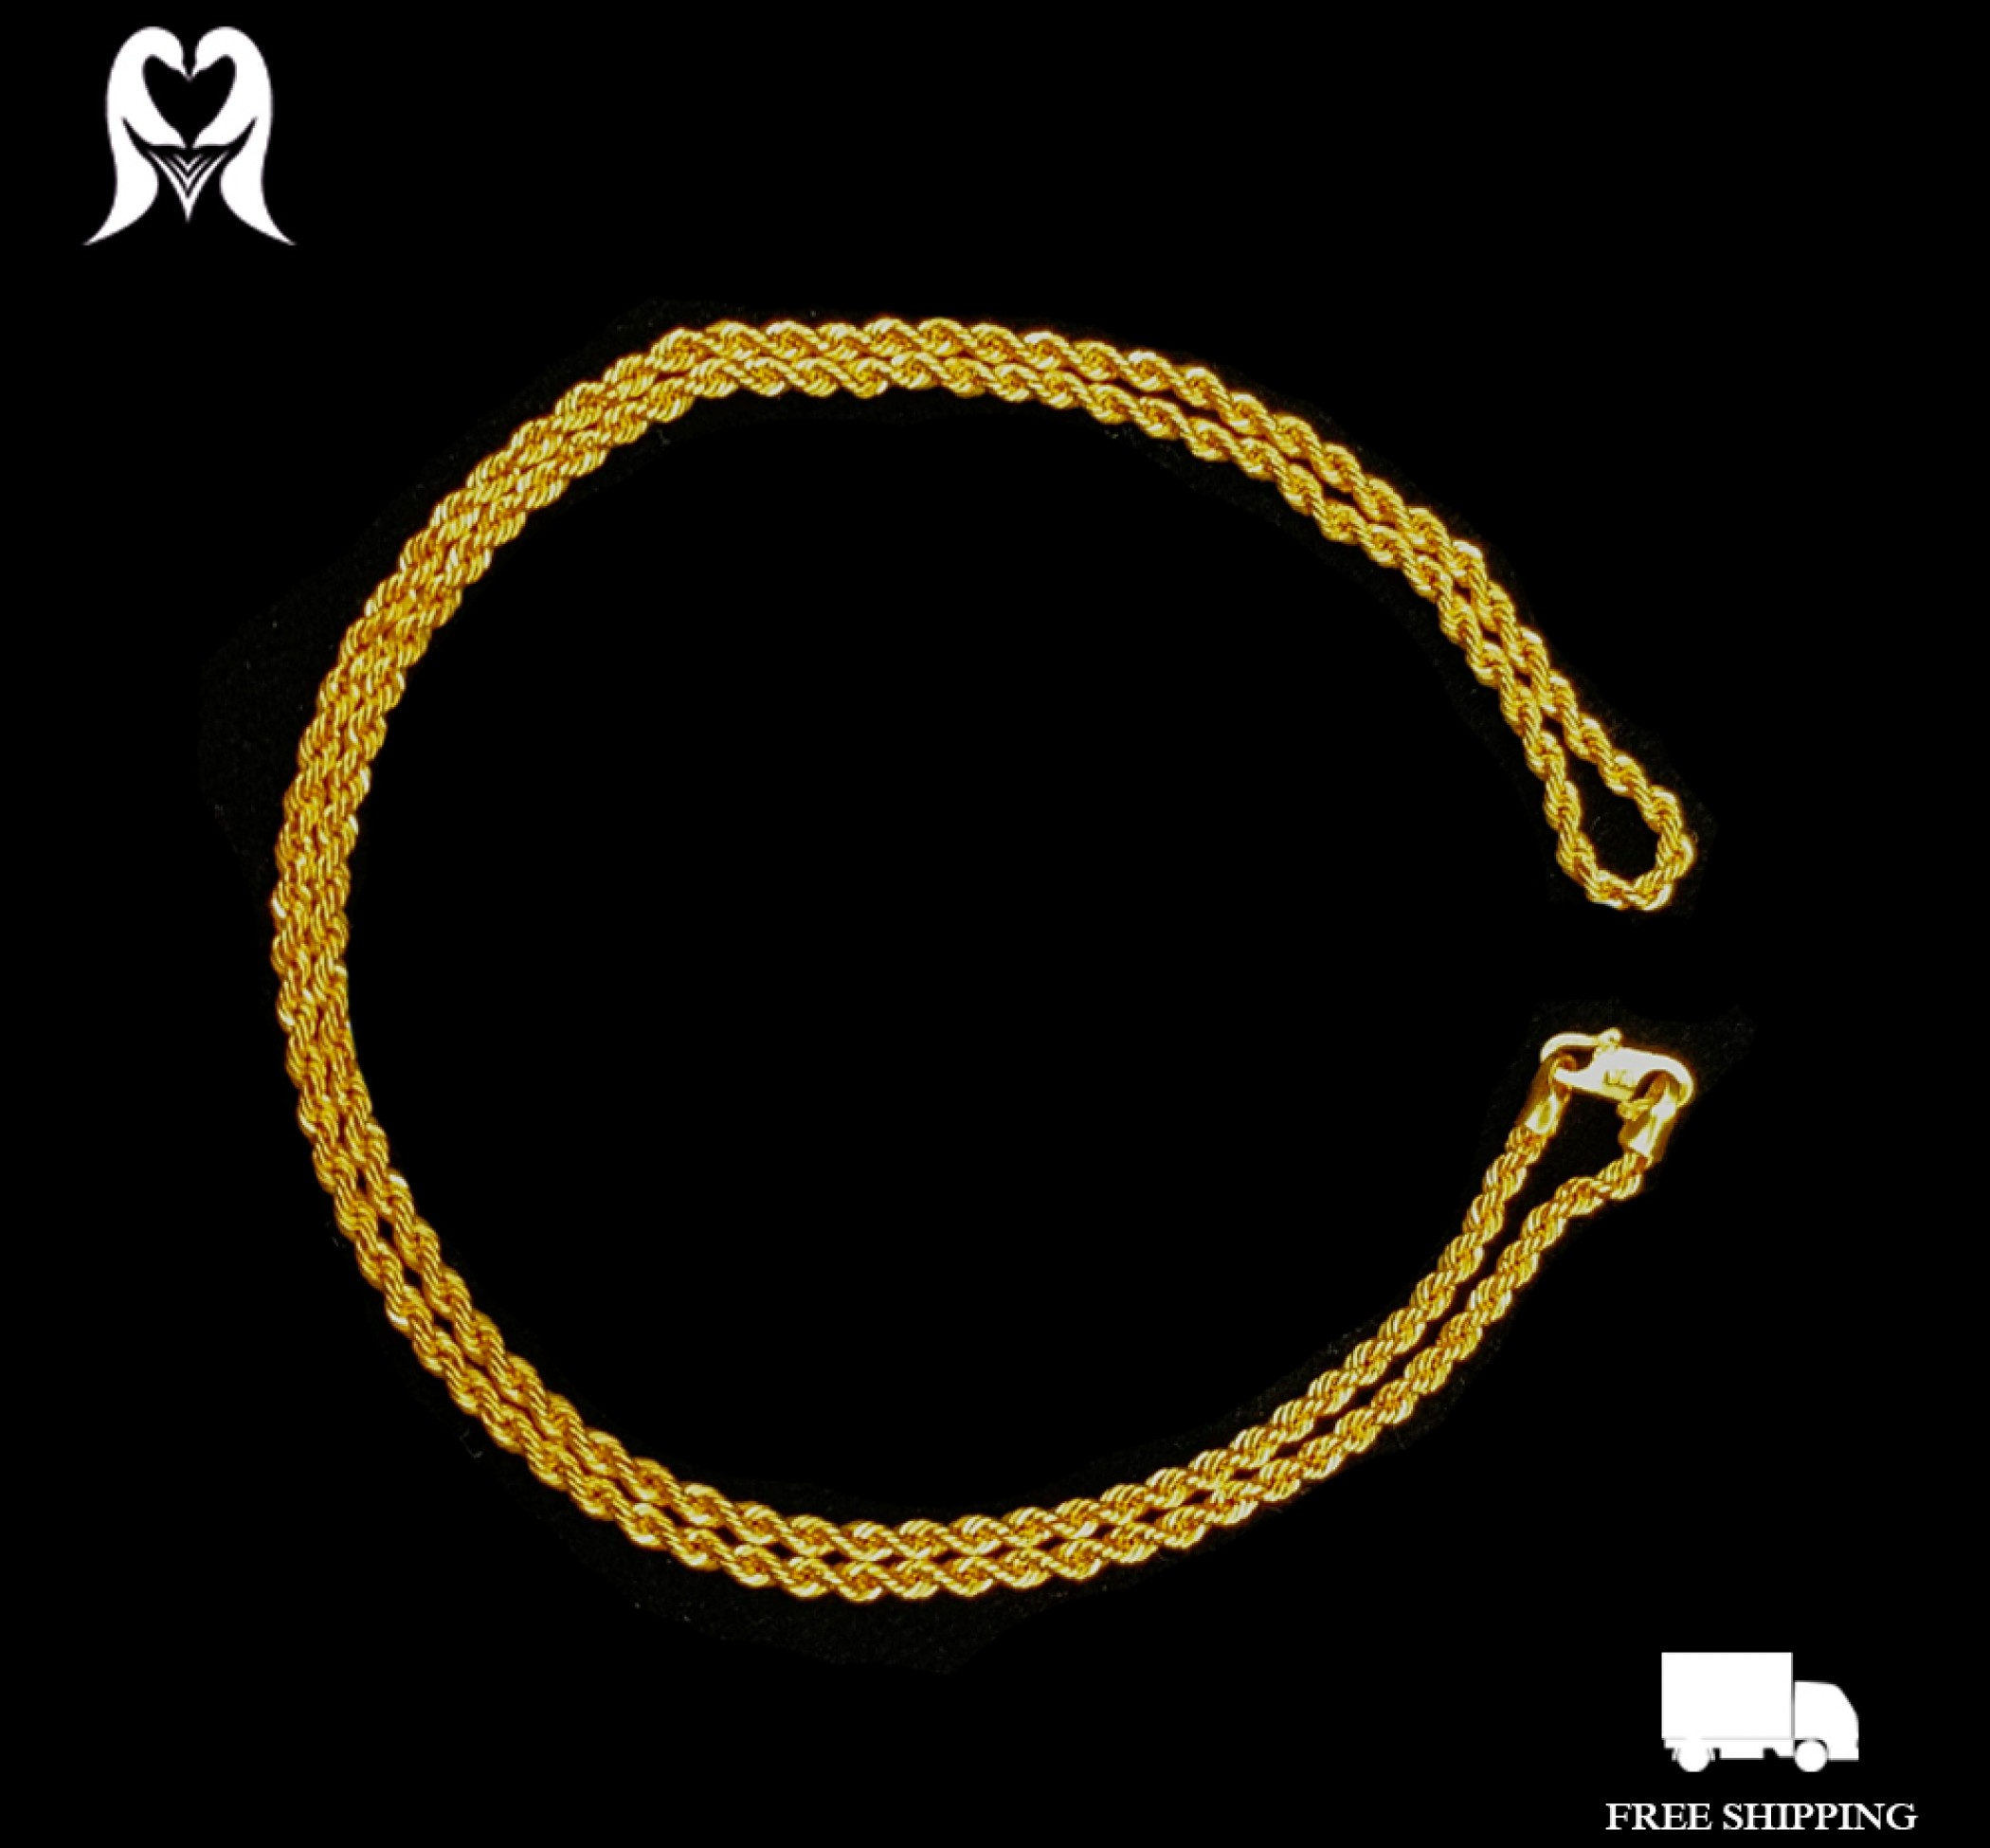 HOLLOW ROPE CHAIN [5.57g - 560258]